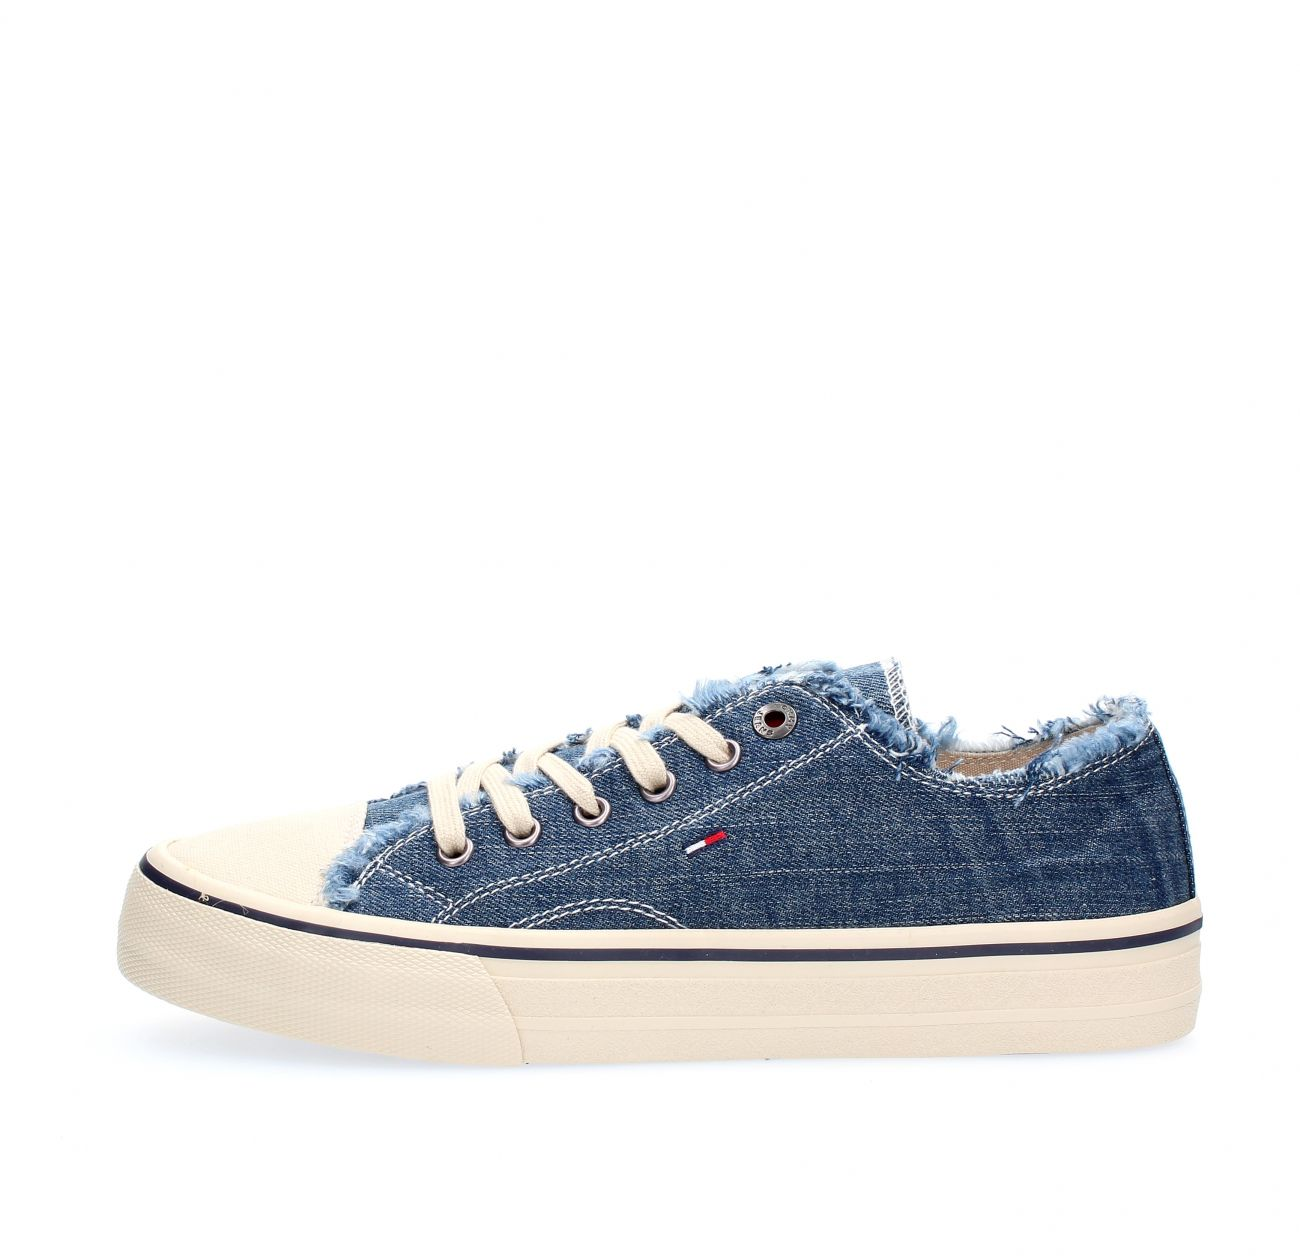 Borra gallerian Sticka  SNEAKERS men TOMMY HILFIGER EM0EM00298 LOWCUT 404 DENIM|Sneaker ...